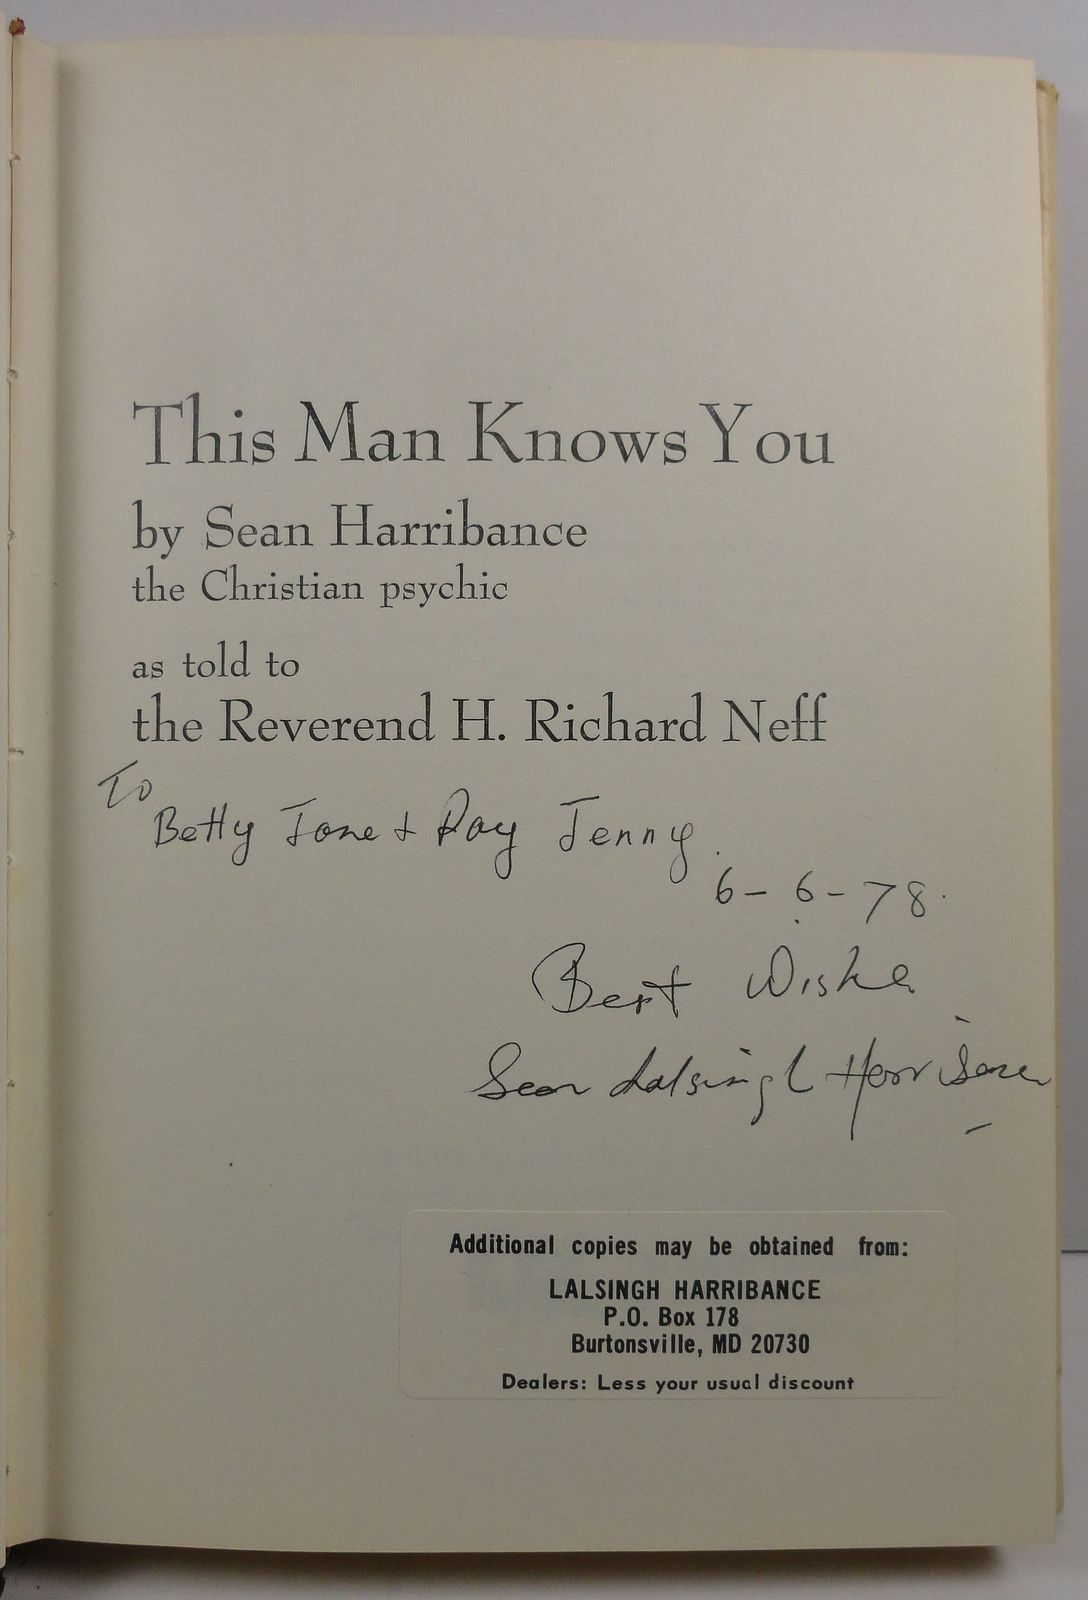 This Man Knows You by Sean Harribance 1976 Signed HC/DJ